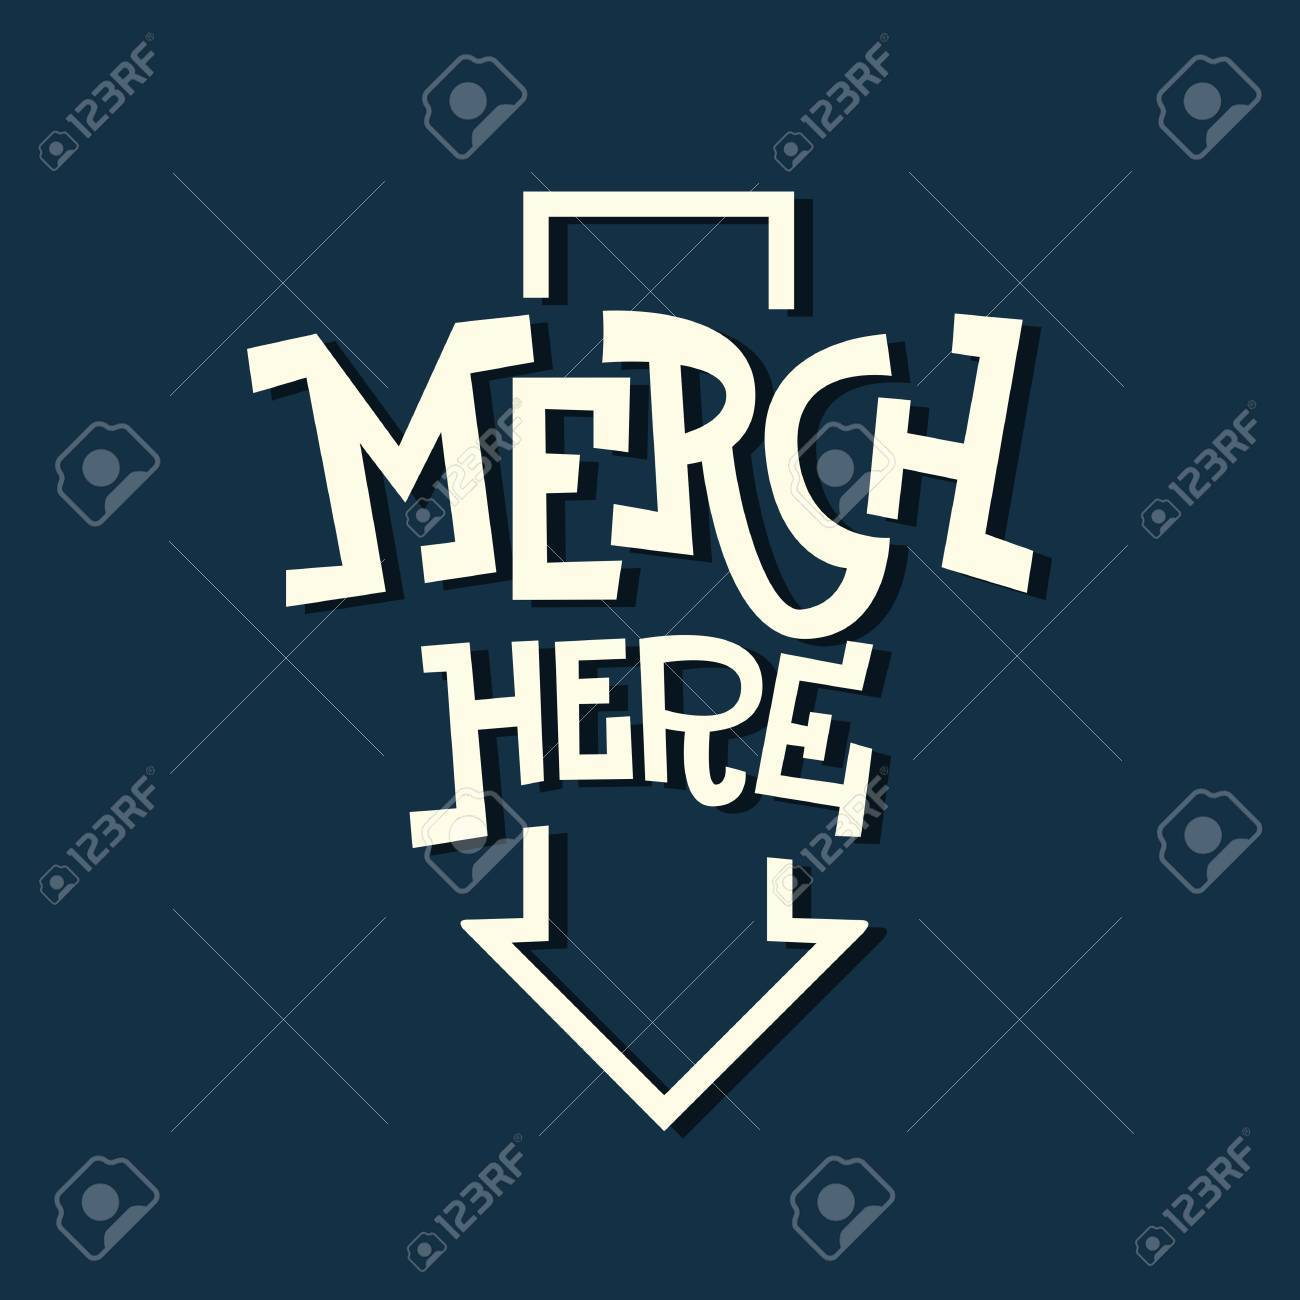 Merch Here Funny Artistic Sign Slab Serif Lettering With An Arro - 72095679